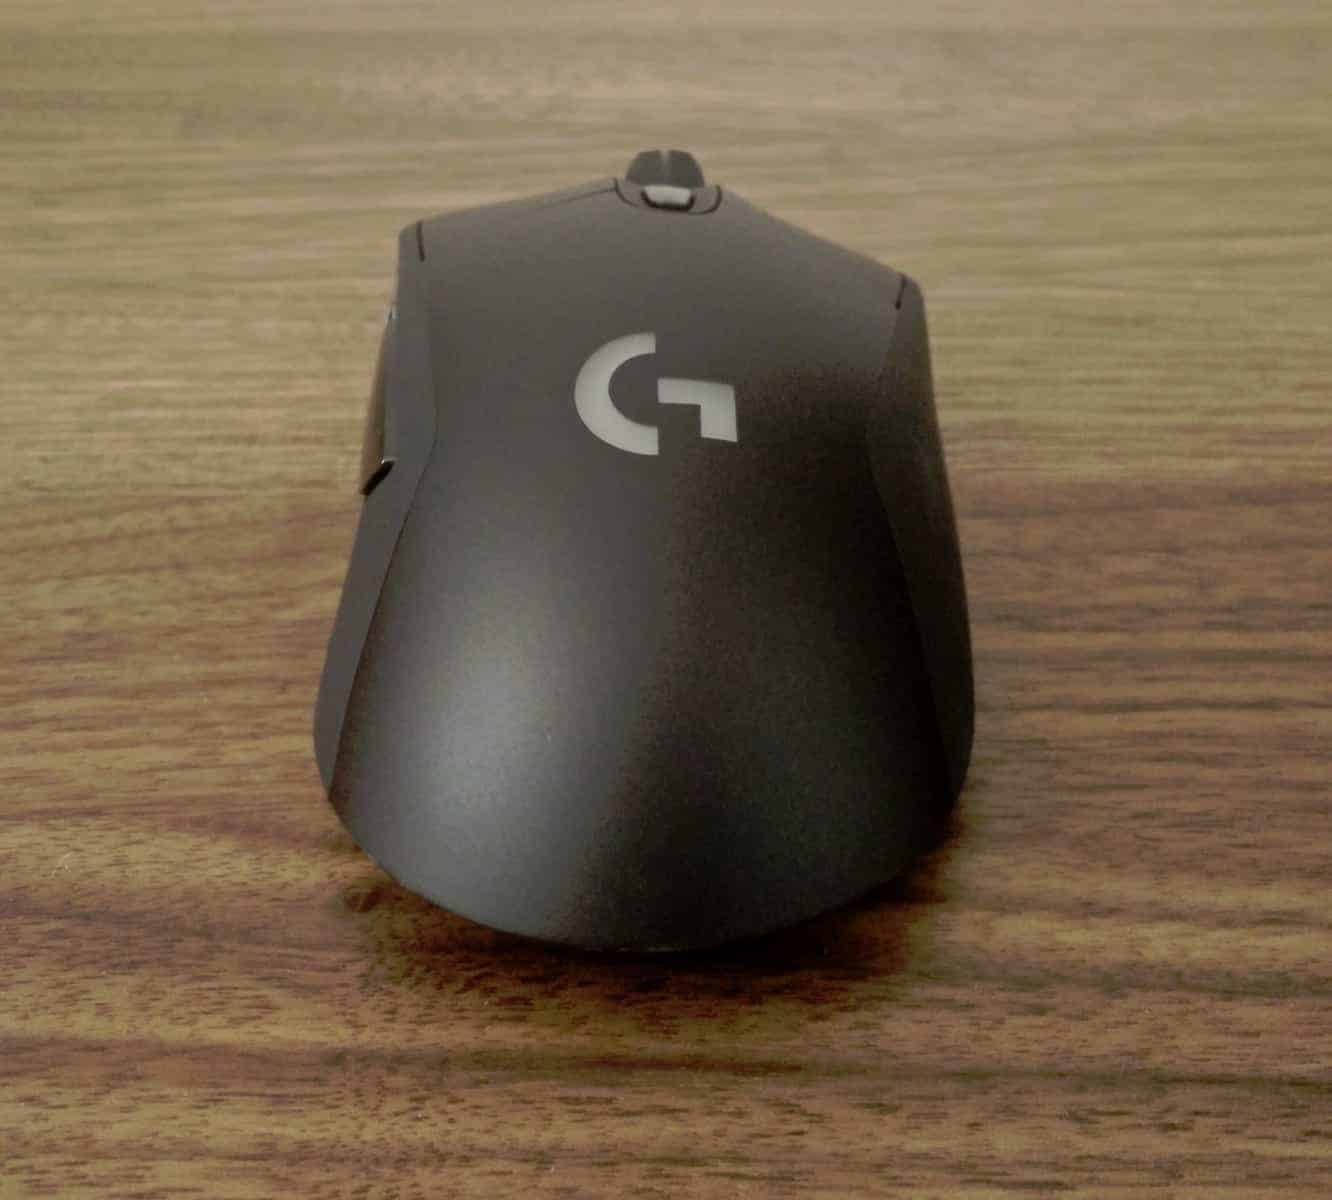 Logitech G403 Prodigy Wireless Gaming Mouse Review - The